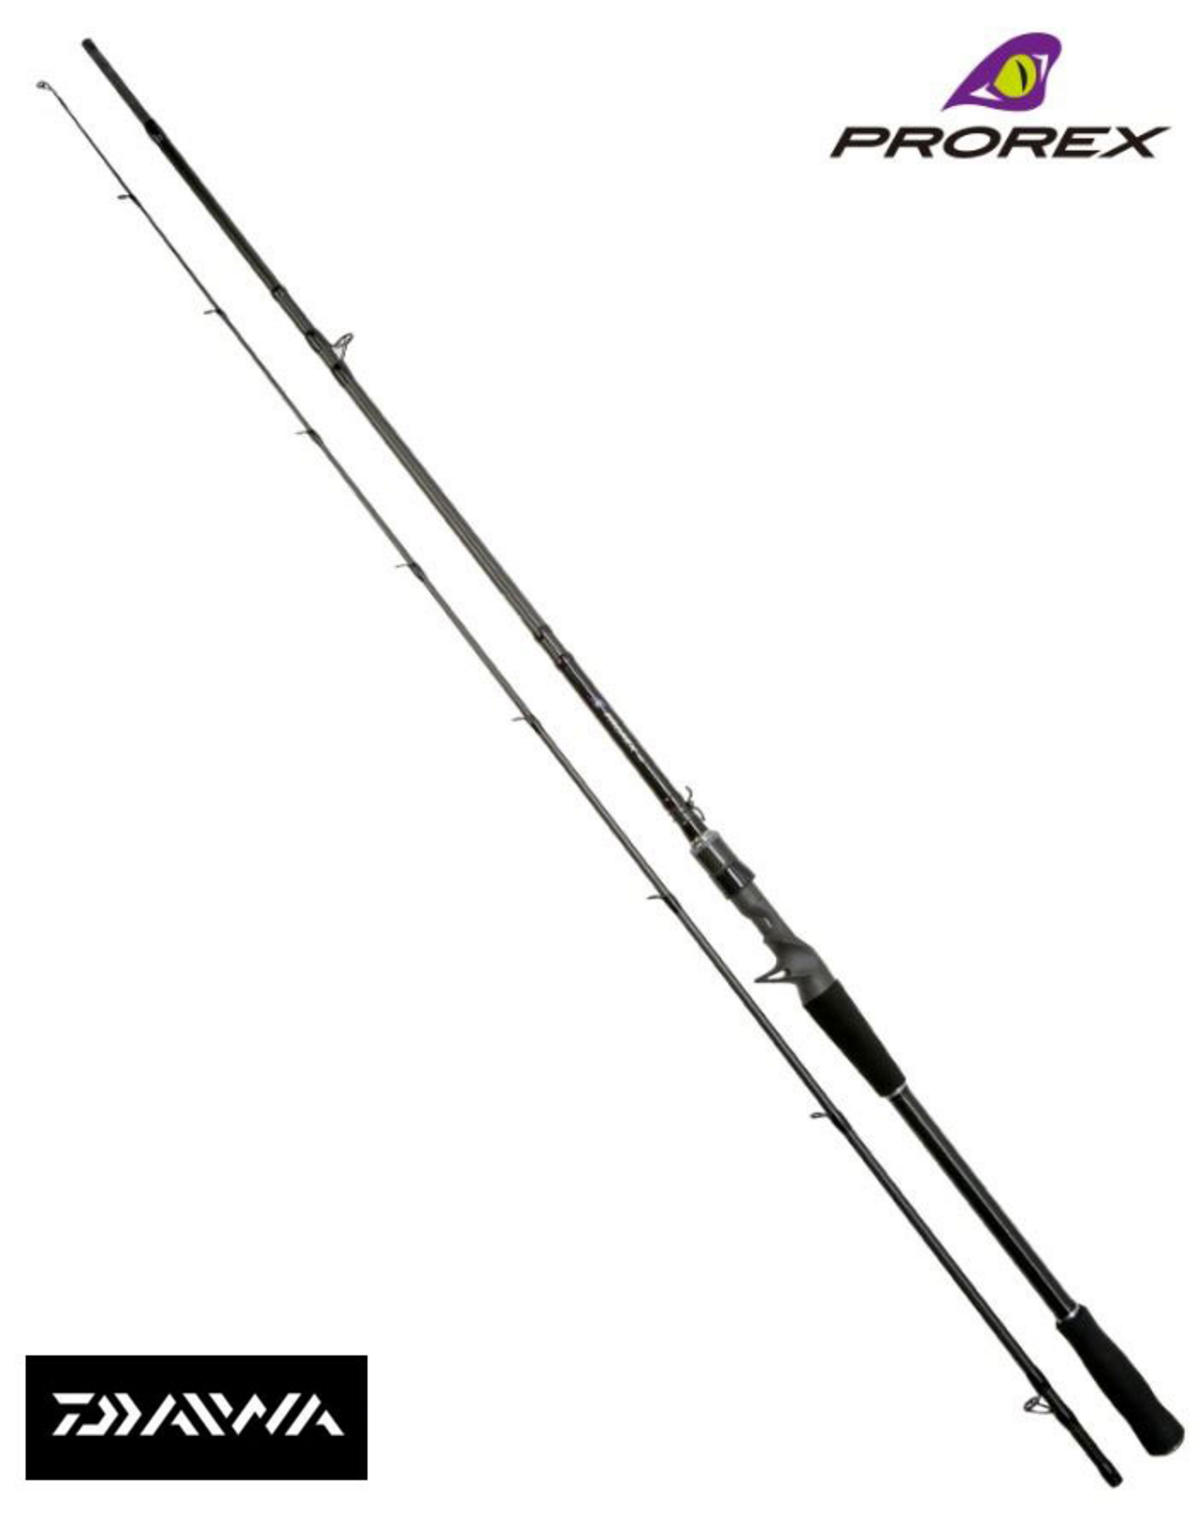 Ex Display Daiwa Prorex AGS Baitcast Spinning Rod Pike/Predator PXAGS712MFB-AS